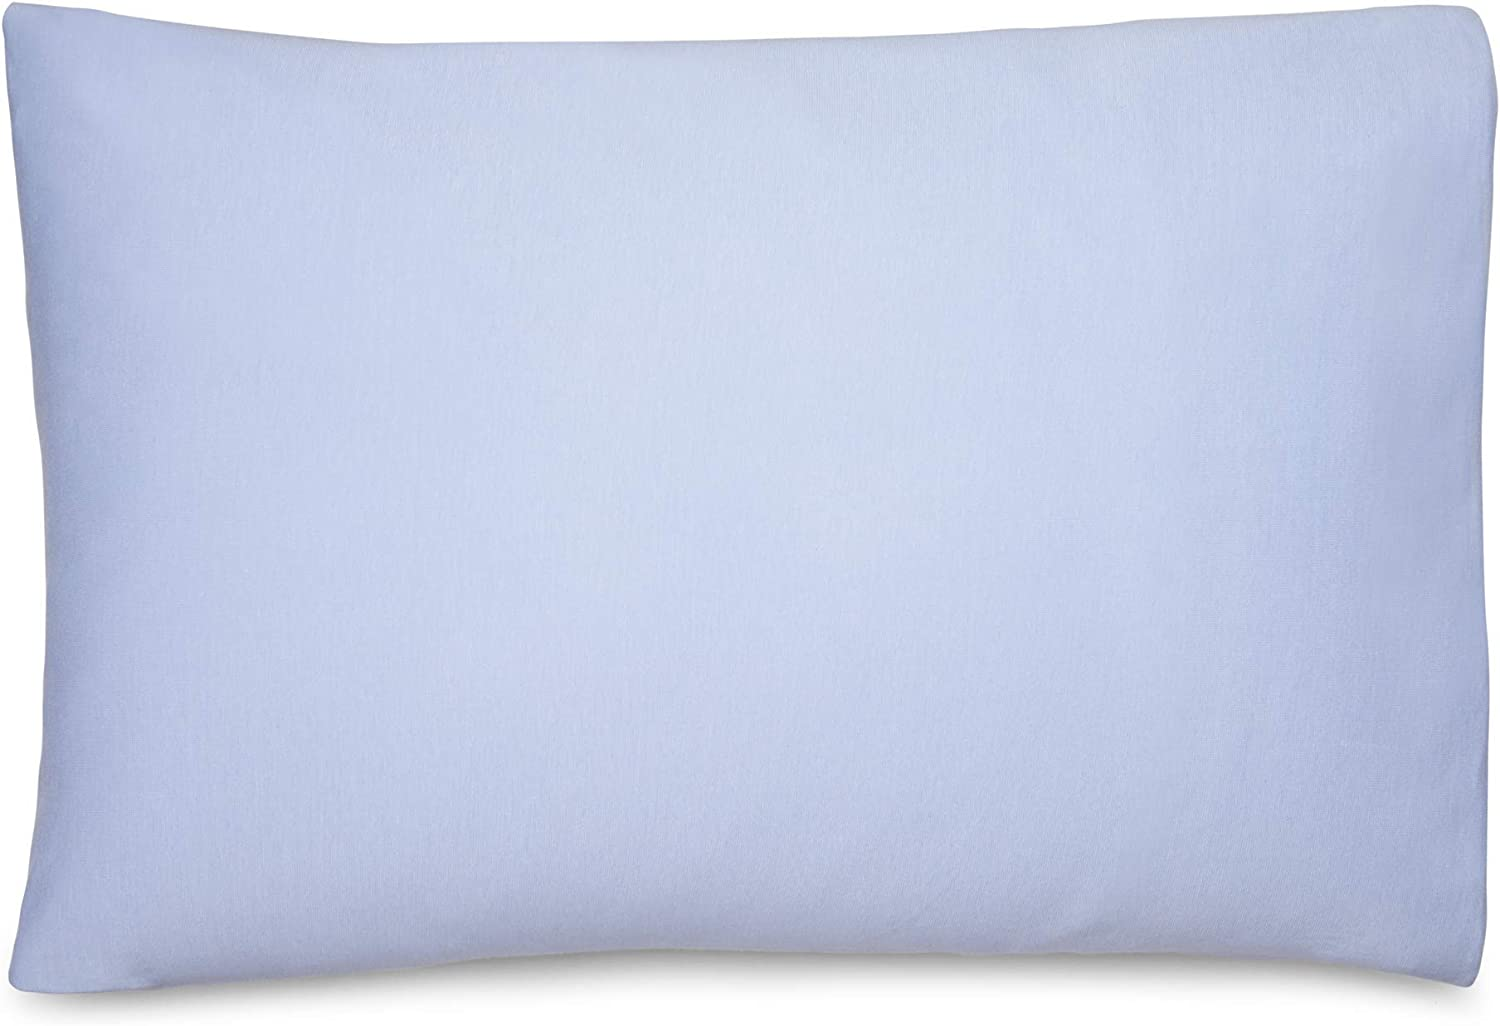 Calvin Klein Home Modern Cotton Harrison Pillowcases, King, Solid Periwinkle